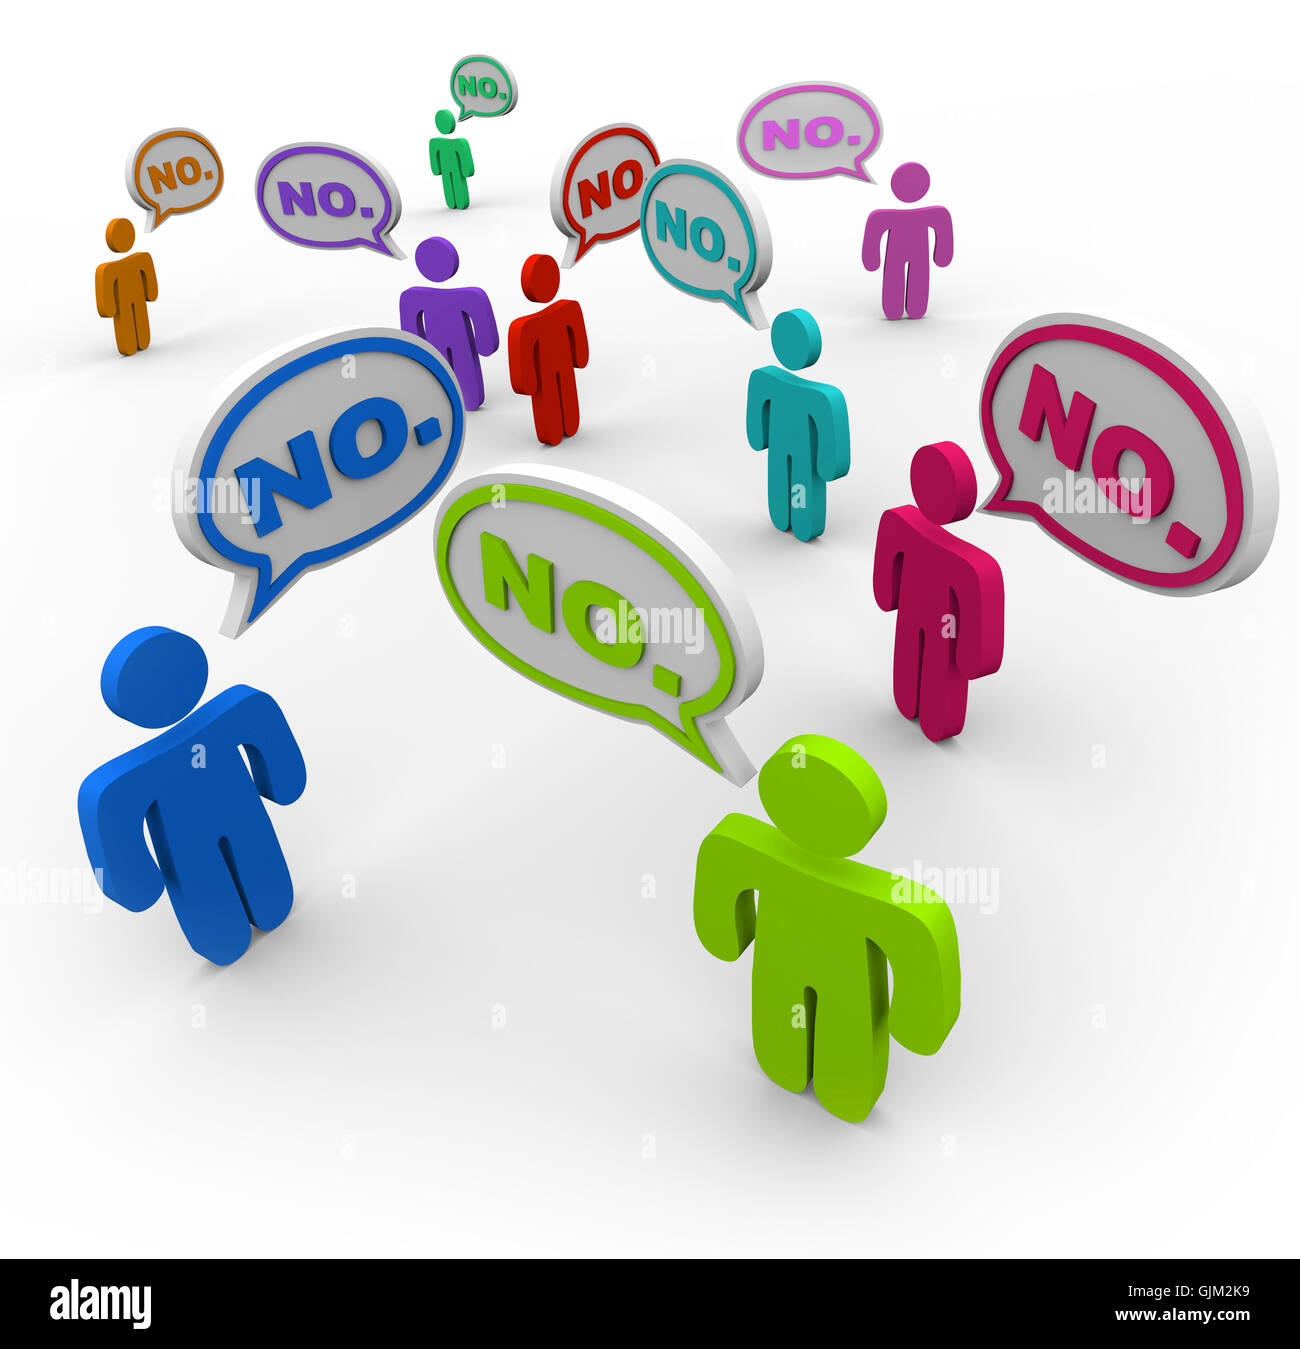 No - People Talking in Speech Bubbles Disagreement - Stock Image